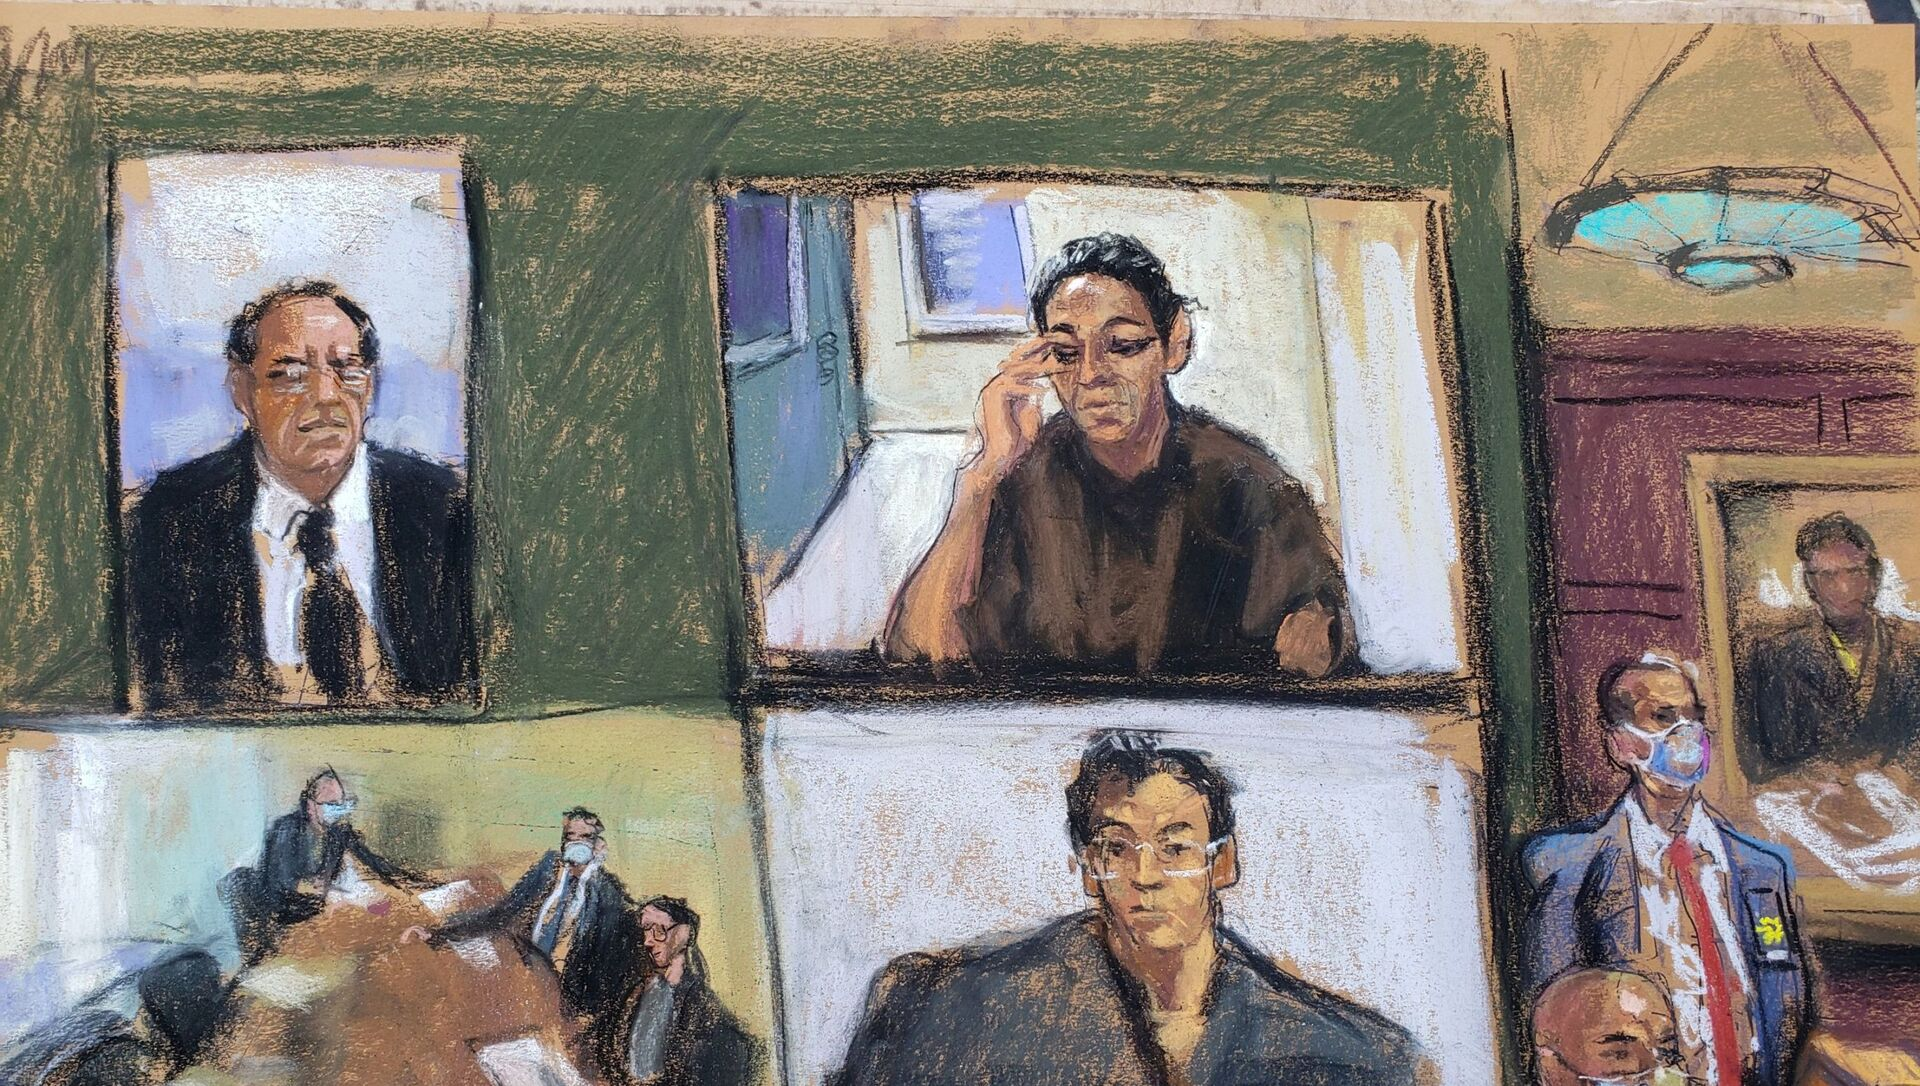 Ghislaine Maxwell appears via video link during her arraignment hearing where she was denied bail for her role aiding Jeffrey Epstein to recruit and eventually abuse of minor girls, in Manhattan Federal Court, in the Manhattan borough of New York City, New York, U.S. July 14, 2020 in this courtroom sketch - Sputnik International, 1920, 30.03.2021